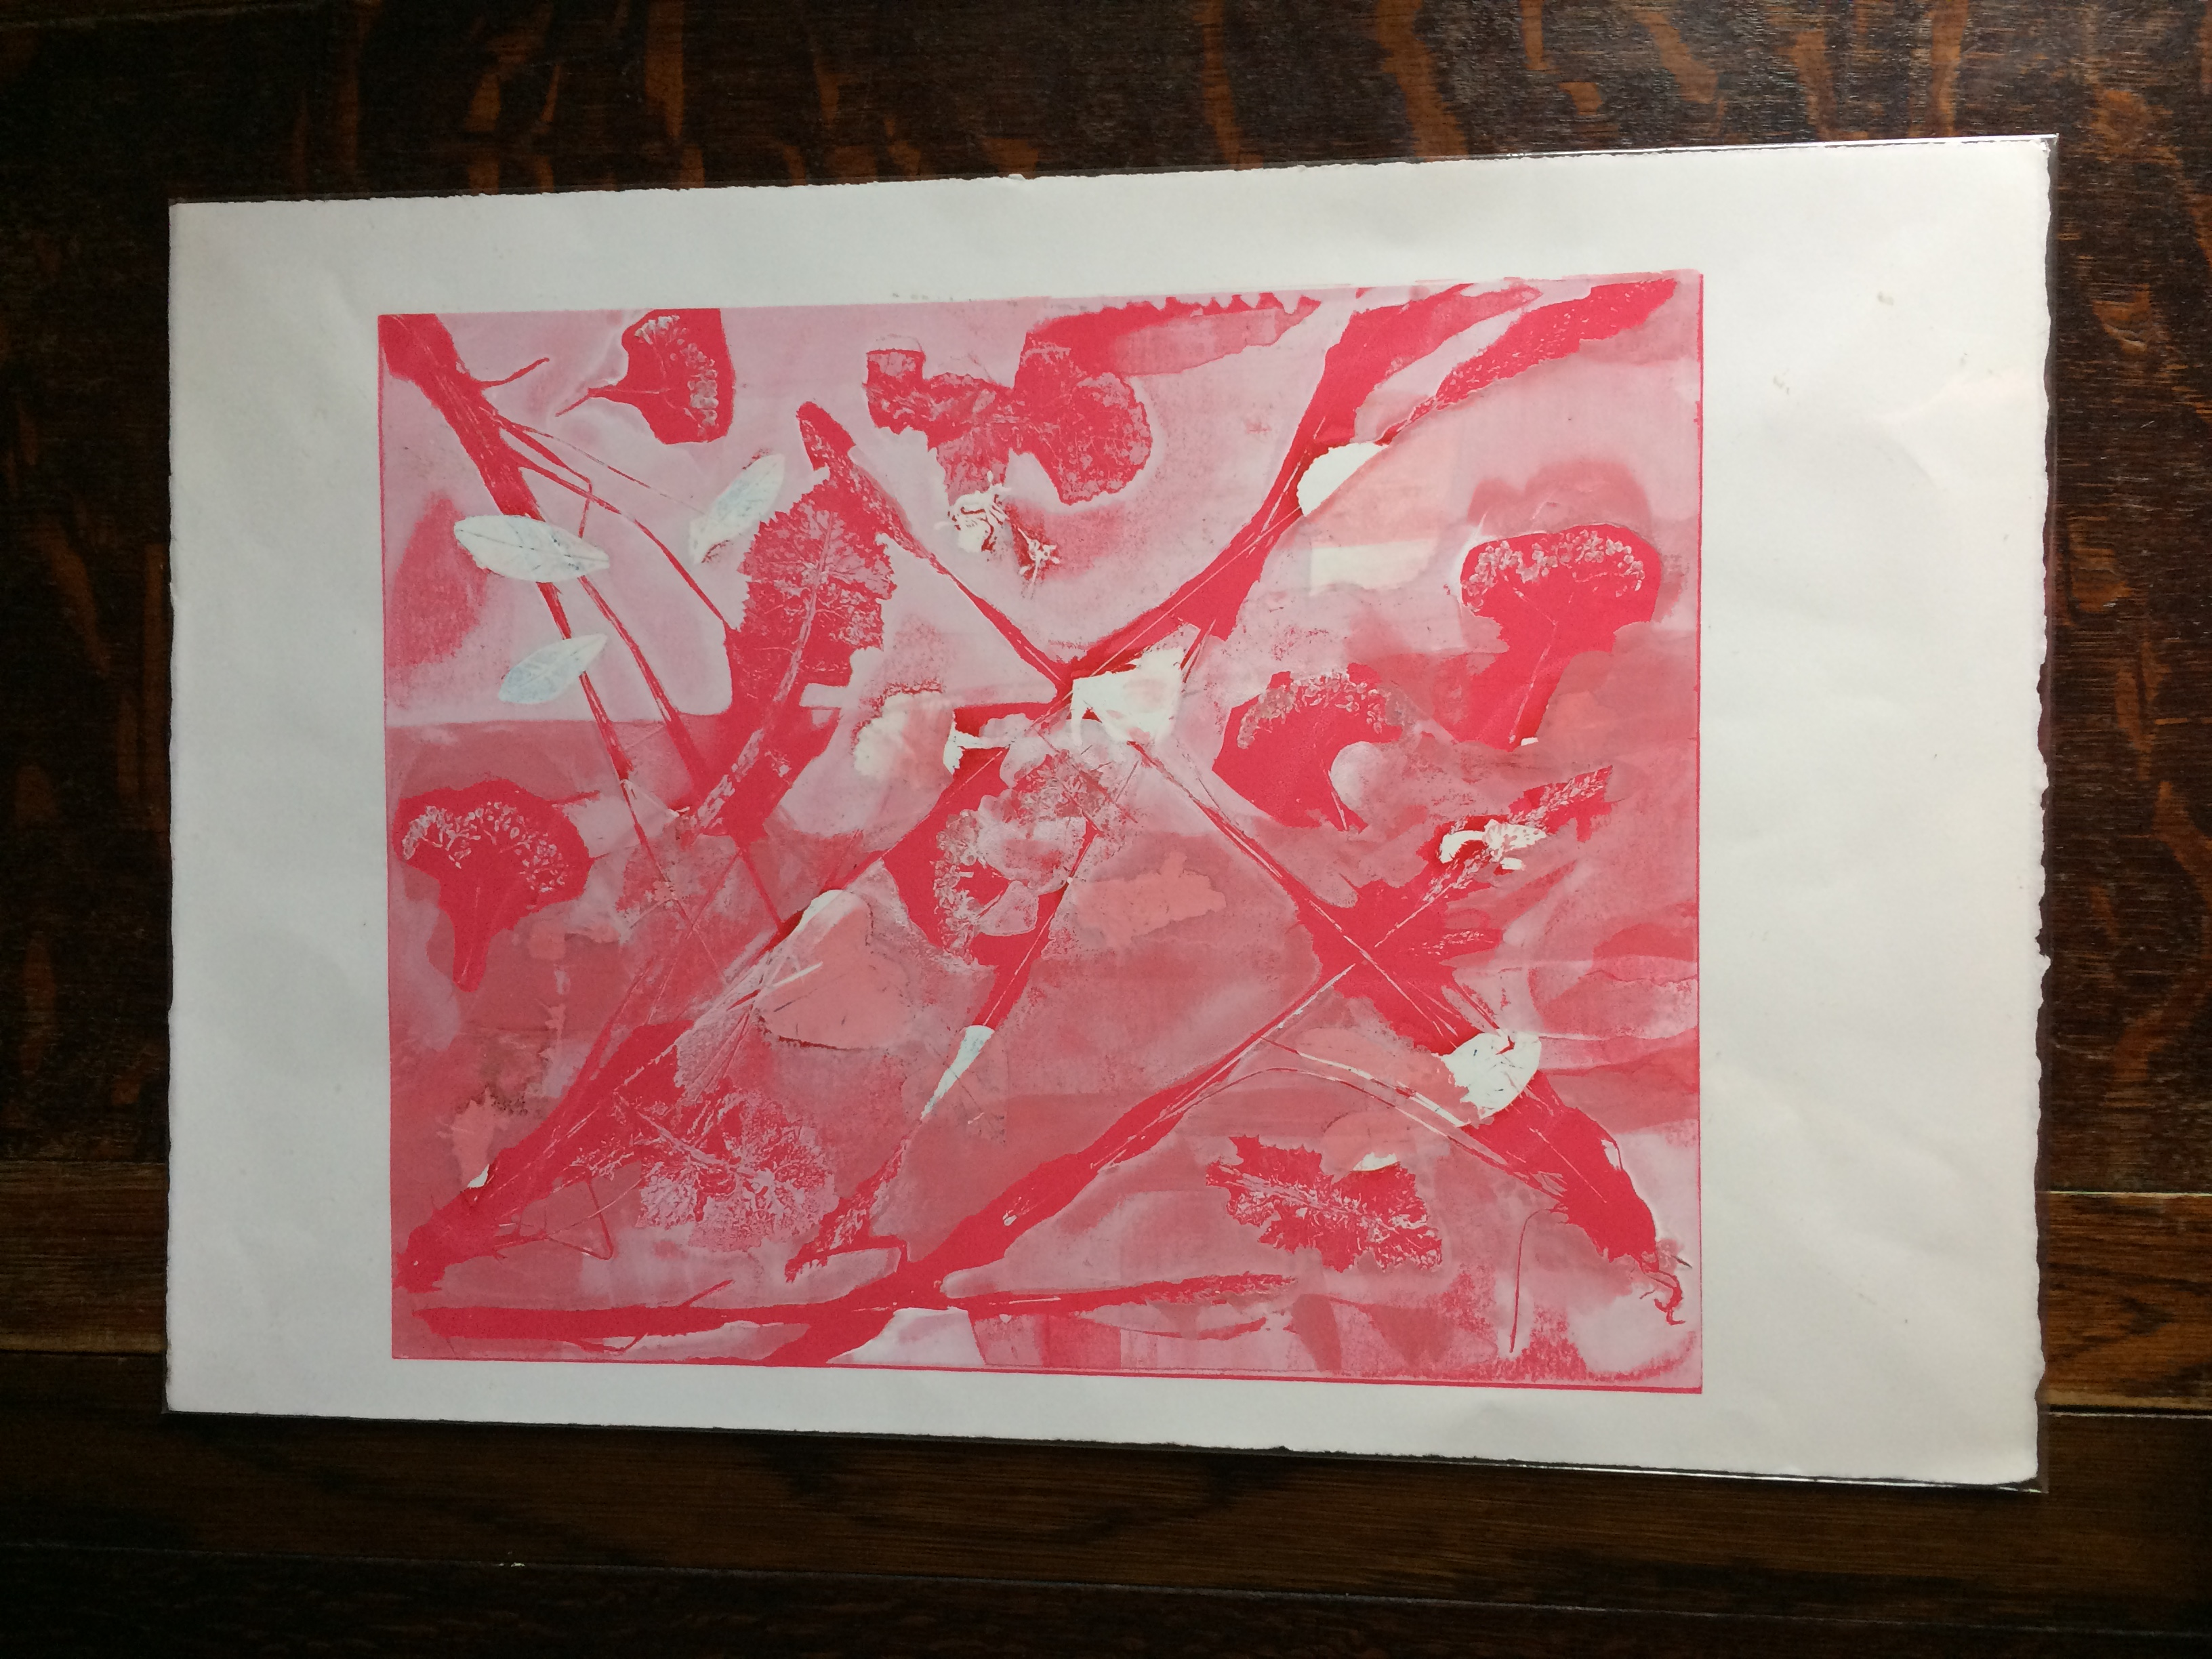 038 Pink Leaves 40 x 33